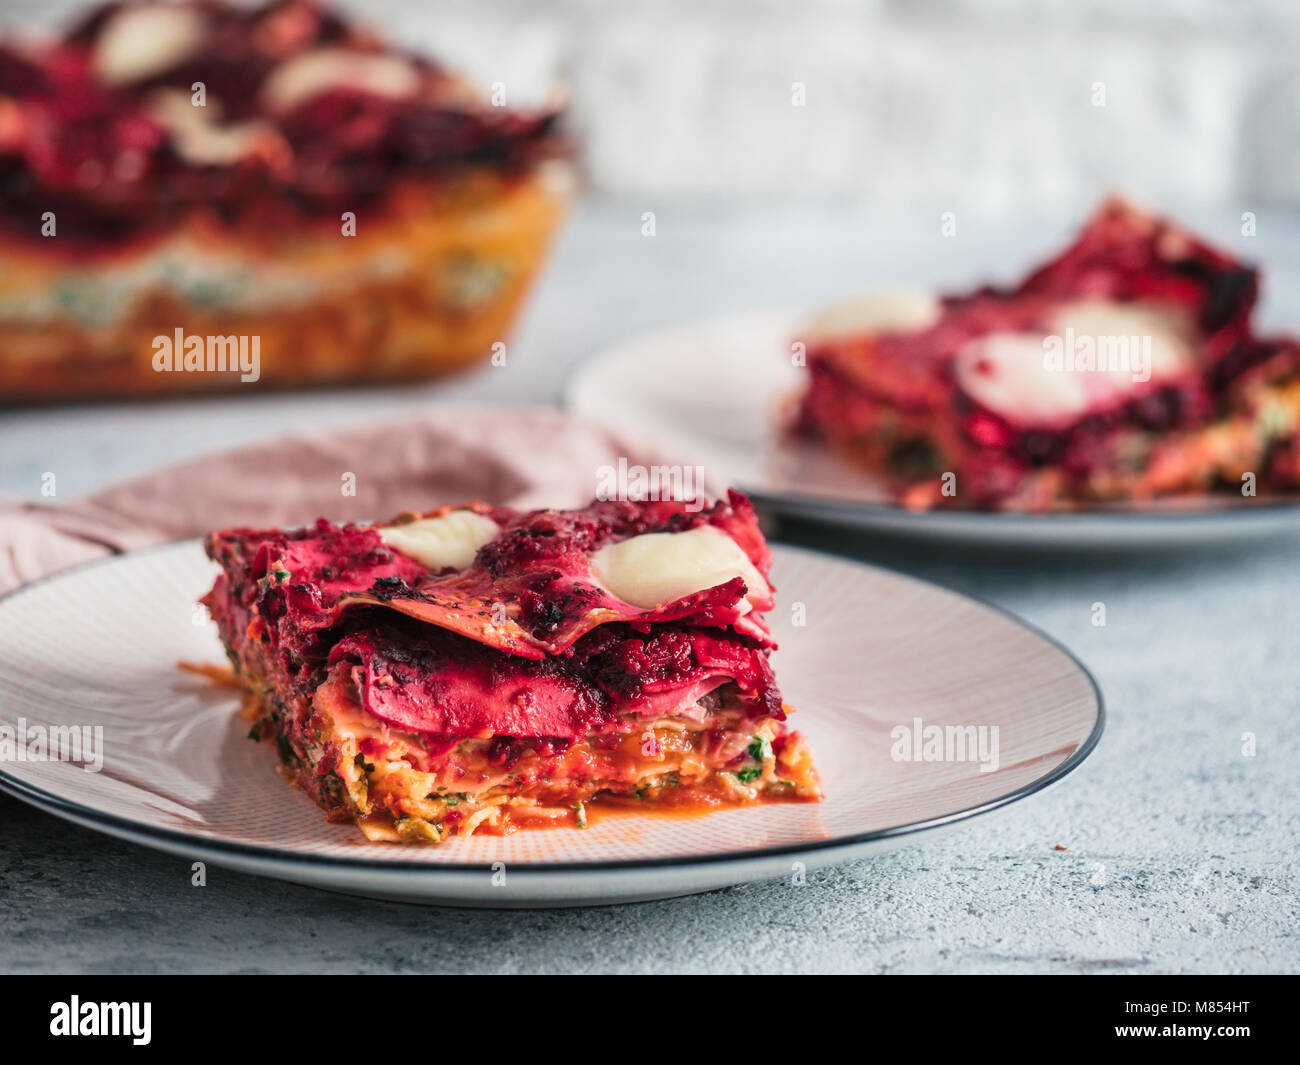 Vegetable rainbow lasagne - Stock Image